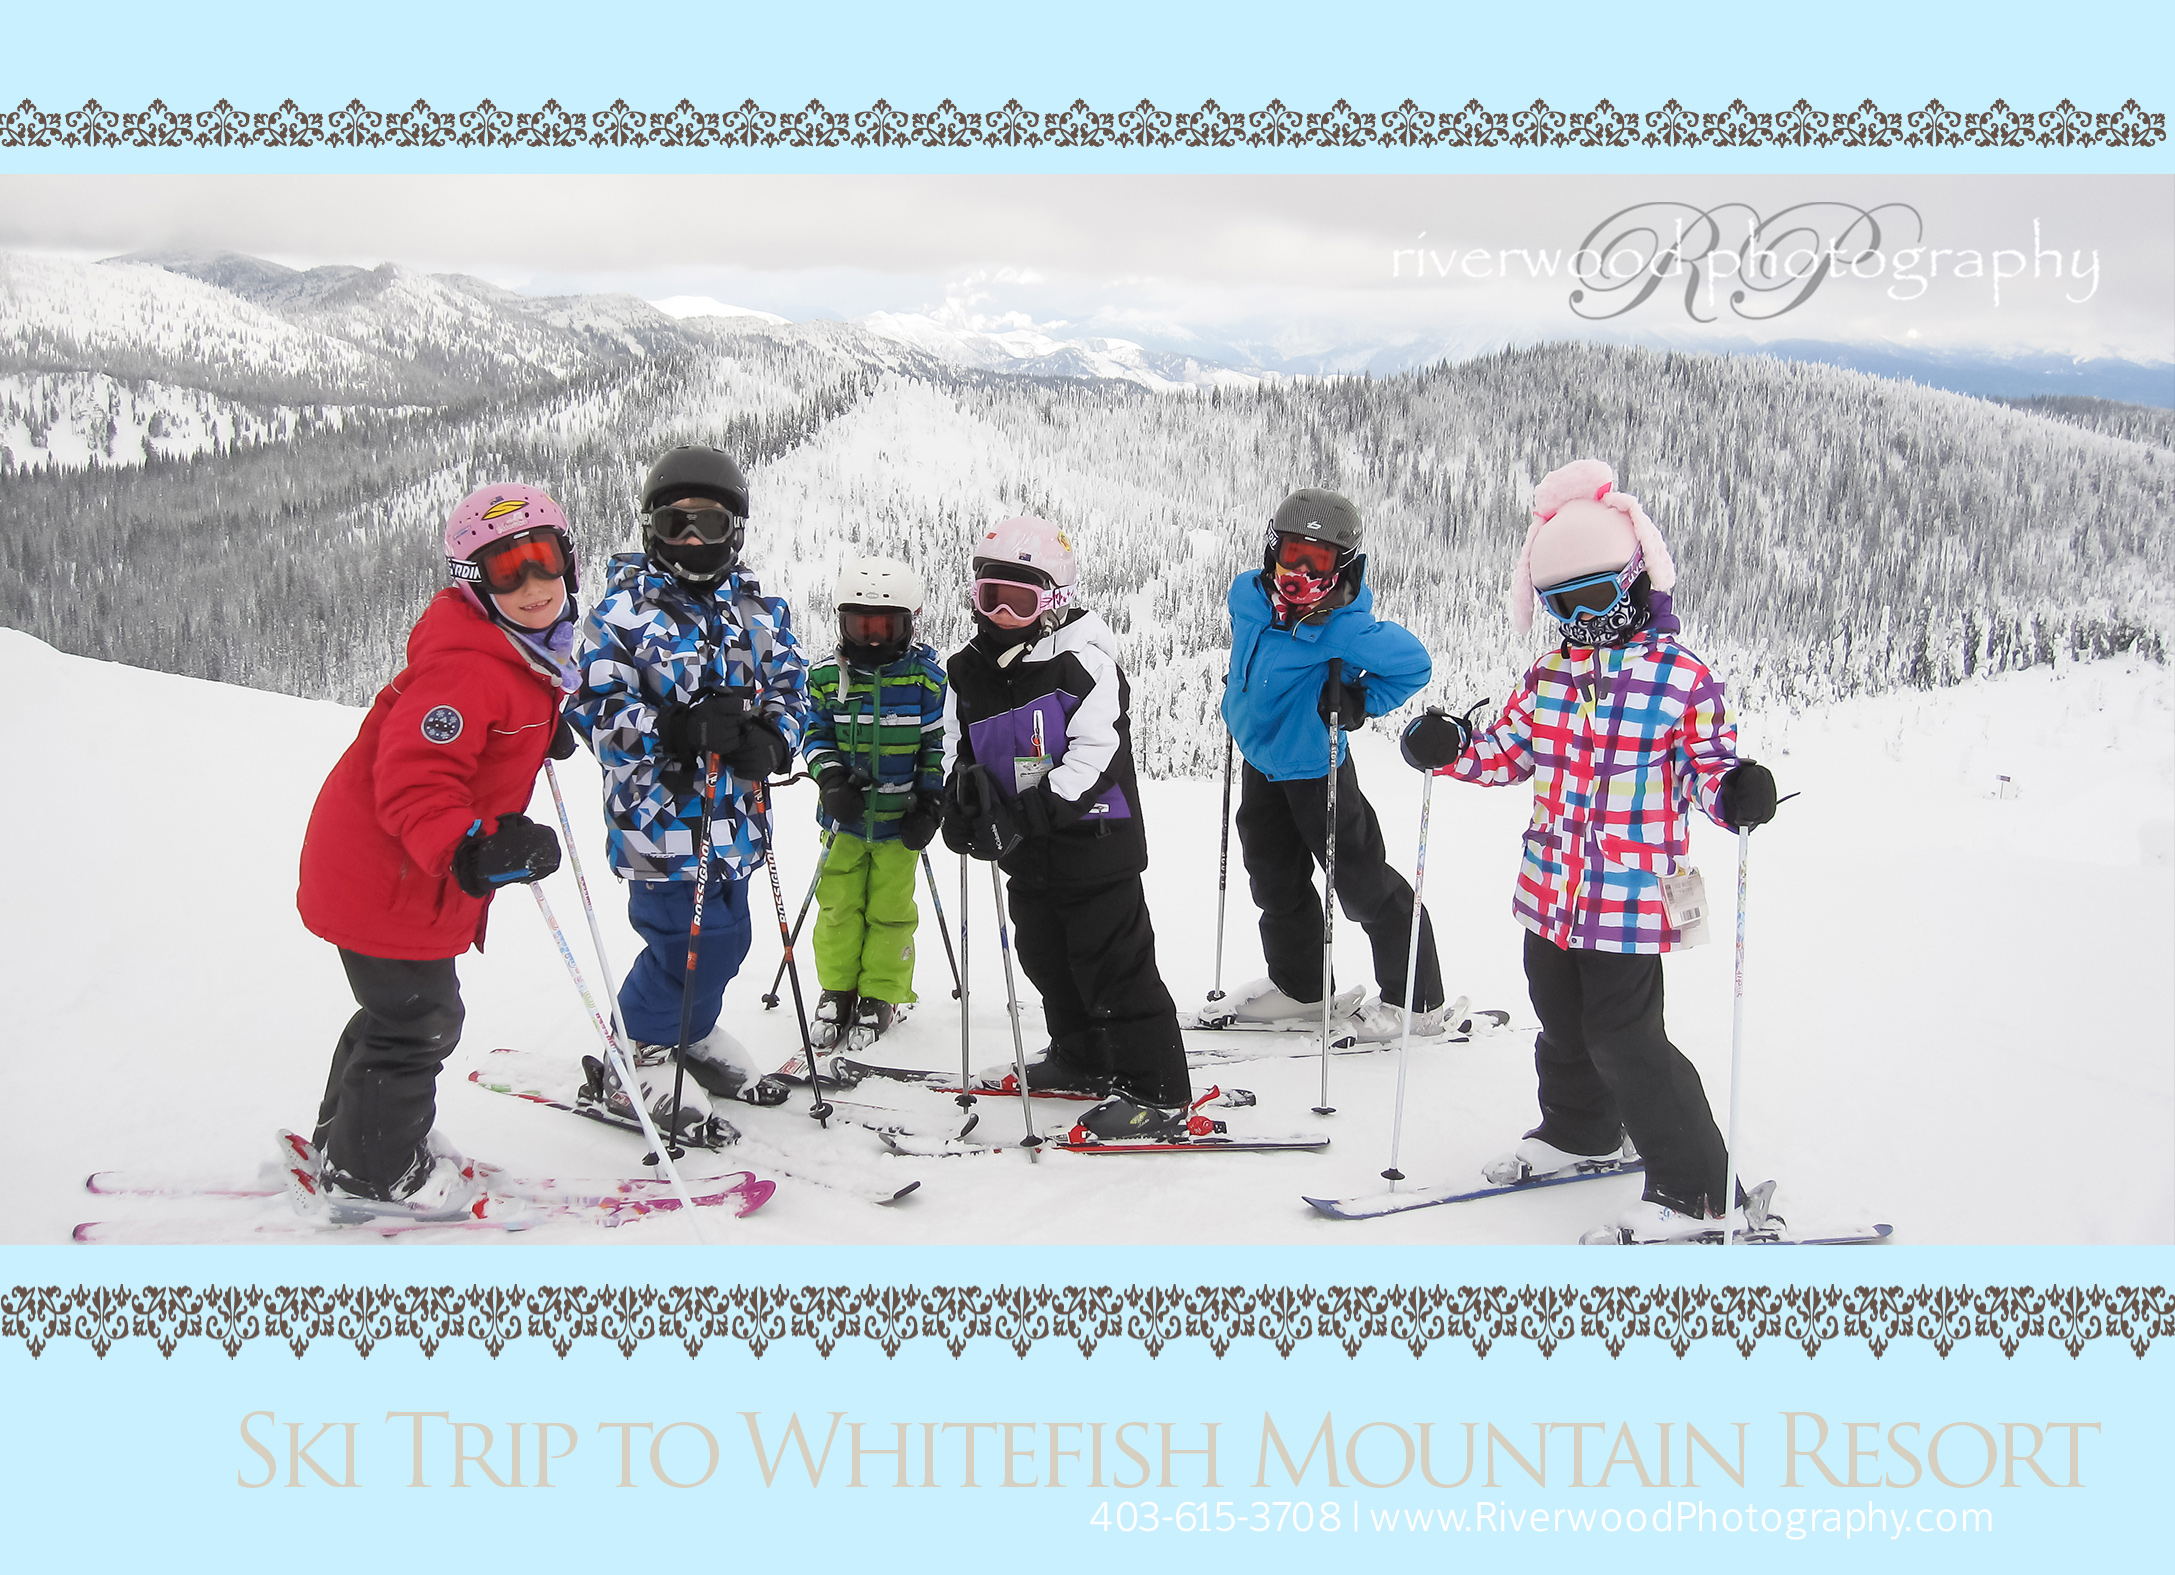 Ski Trip to Whitefish Mountain Resort